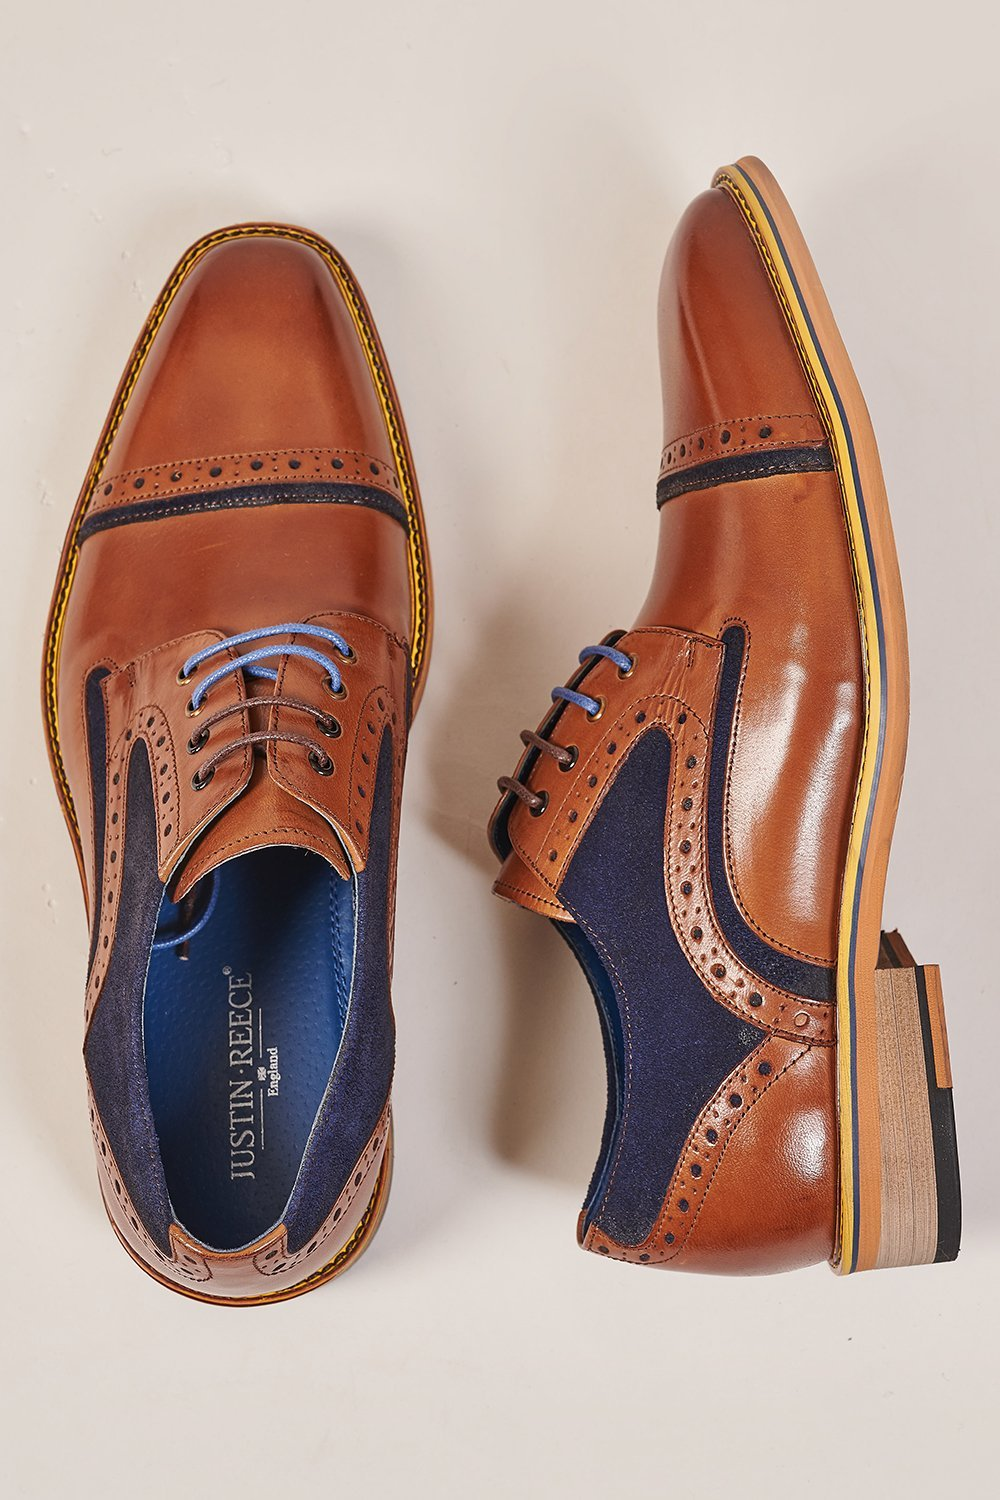 Justin Reece Dennis Toe Cap Derby Shoe - Brown Leather & Navy Suede